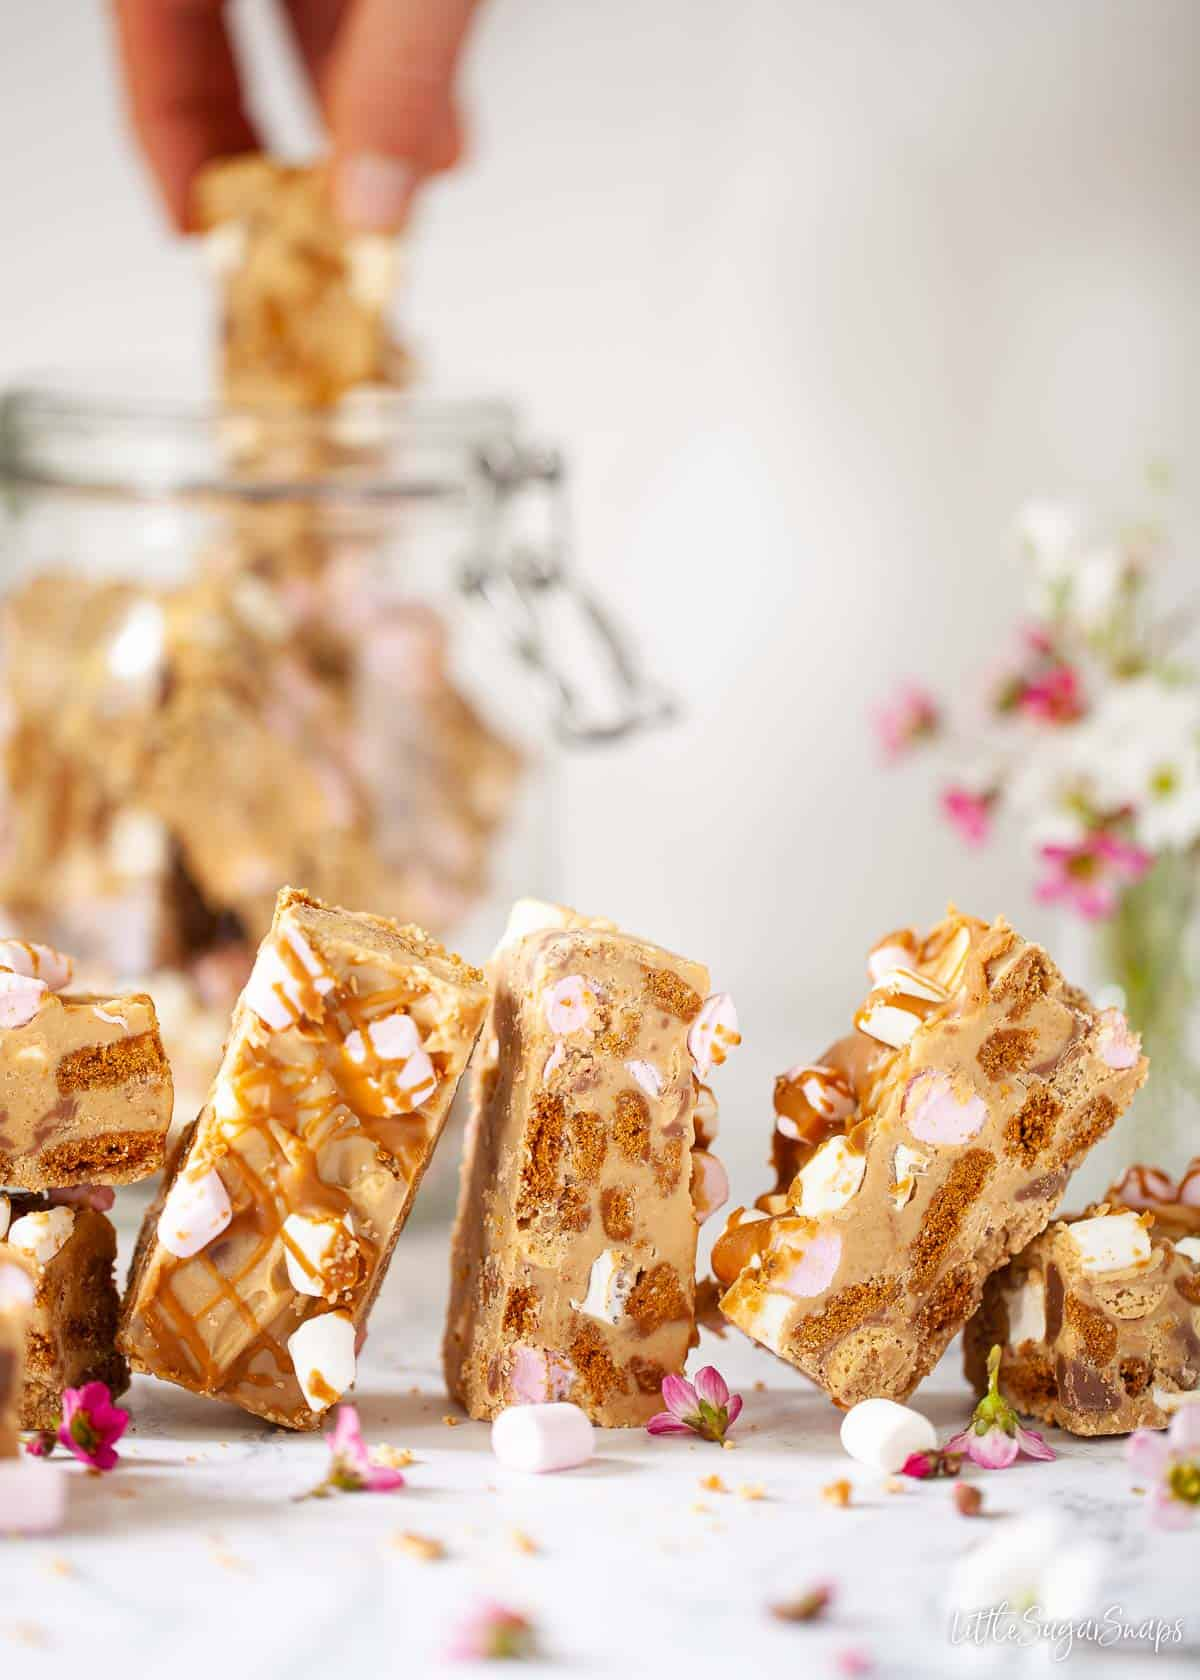 White chocolate and biscoff rocky road with a person taking a bar